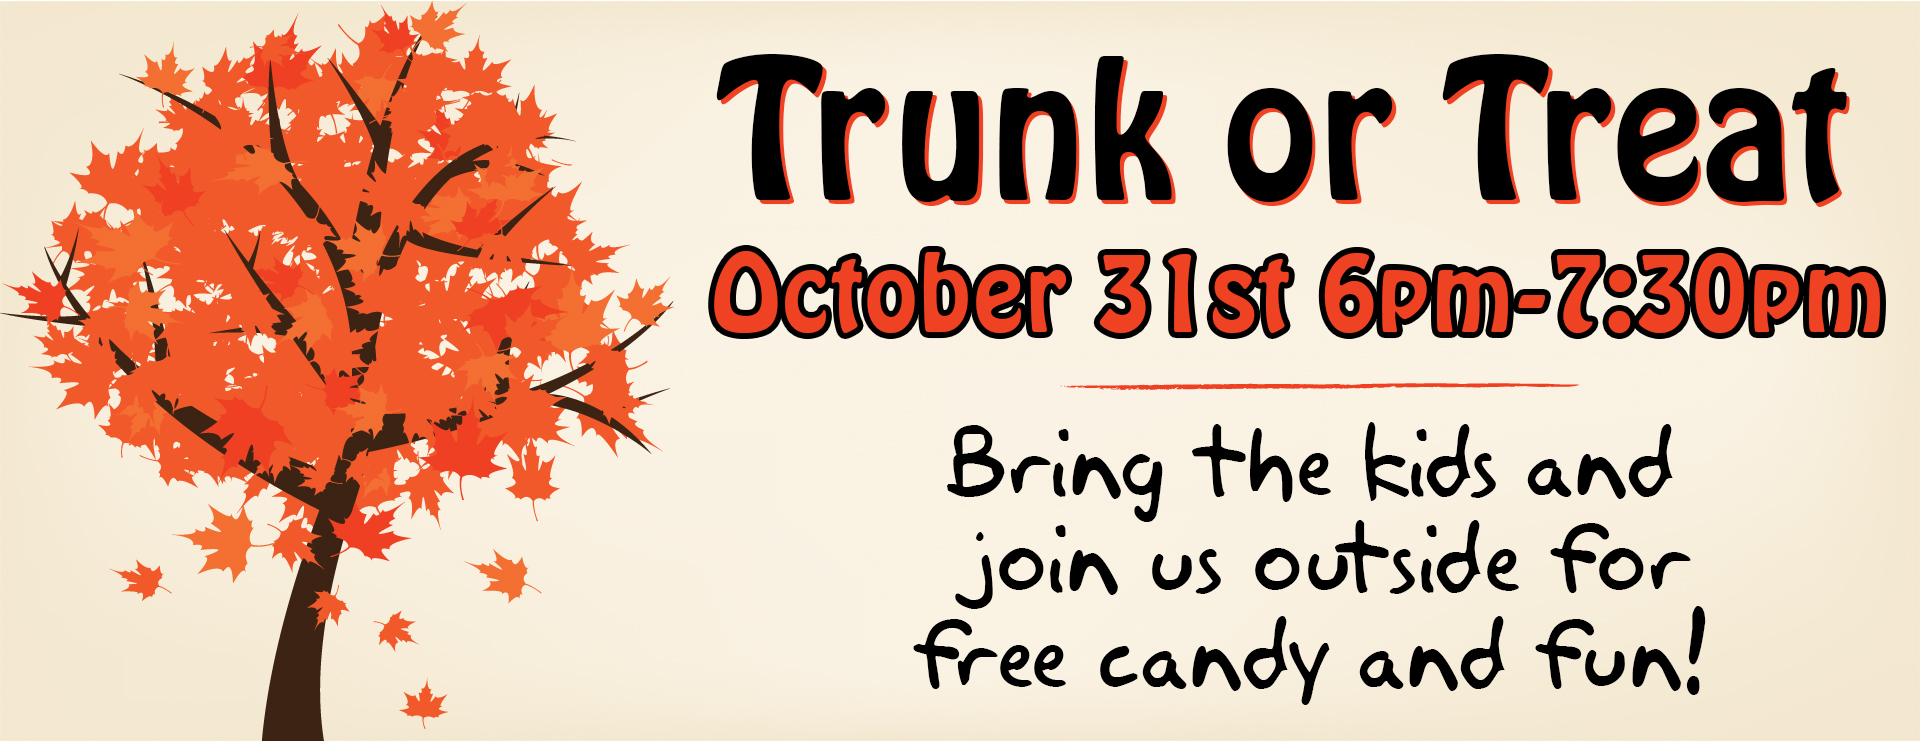 Trunk or Treat Wednesday October 31st at 6pm